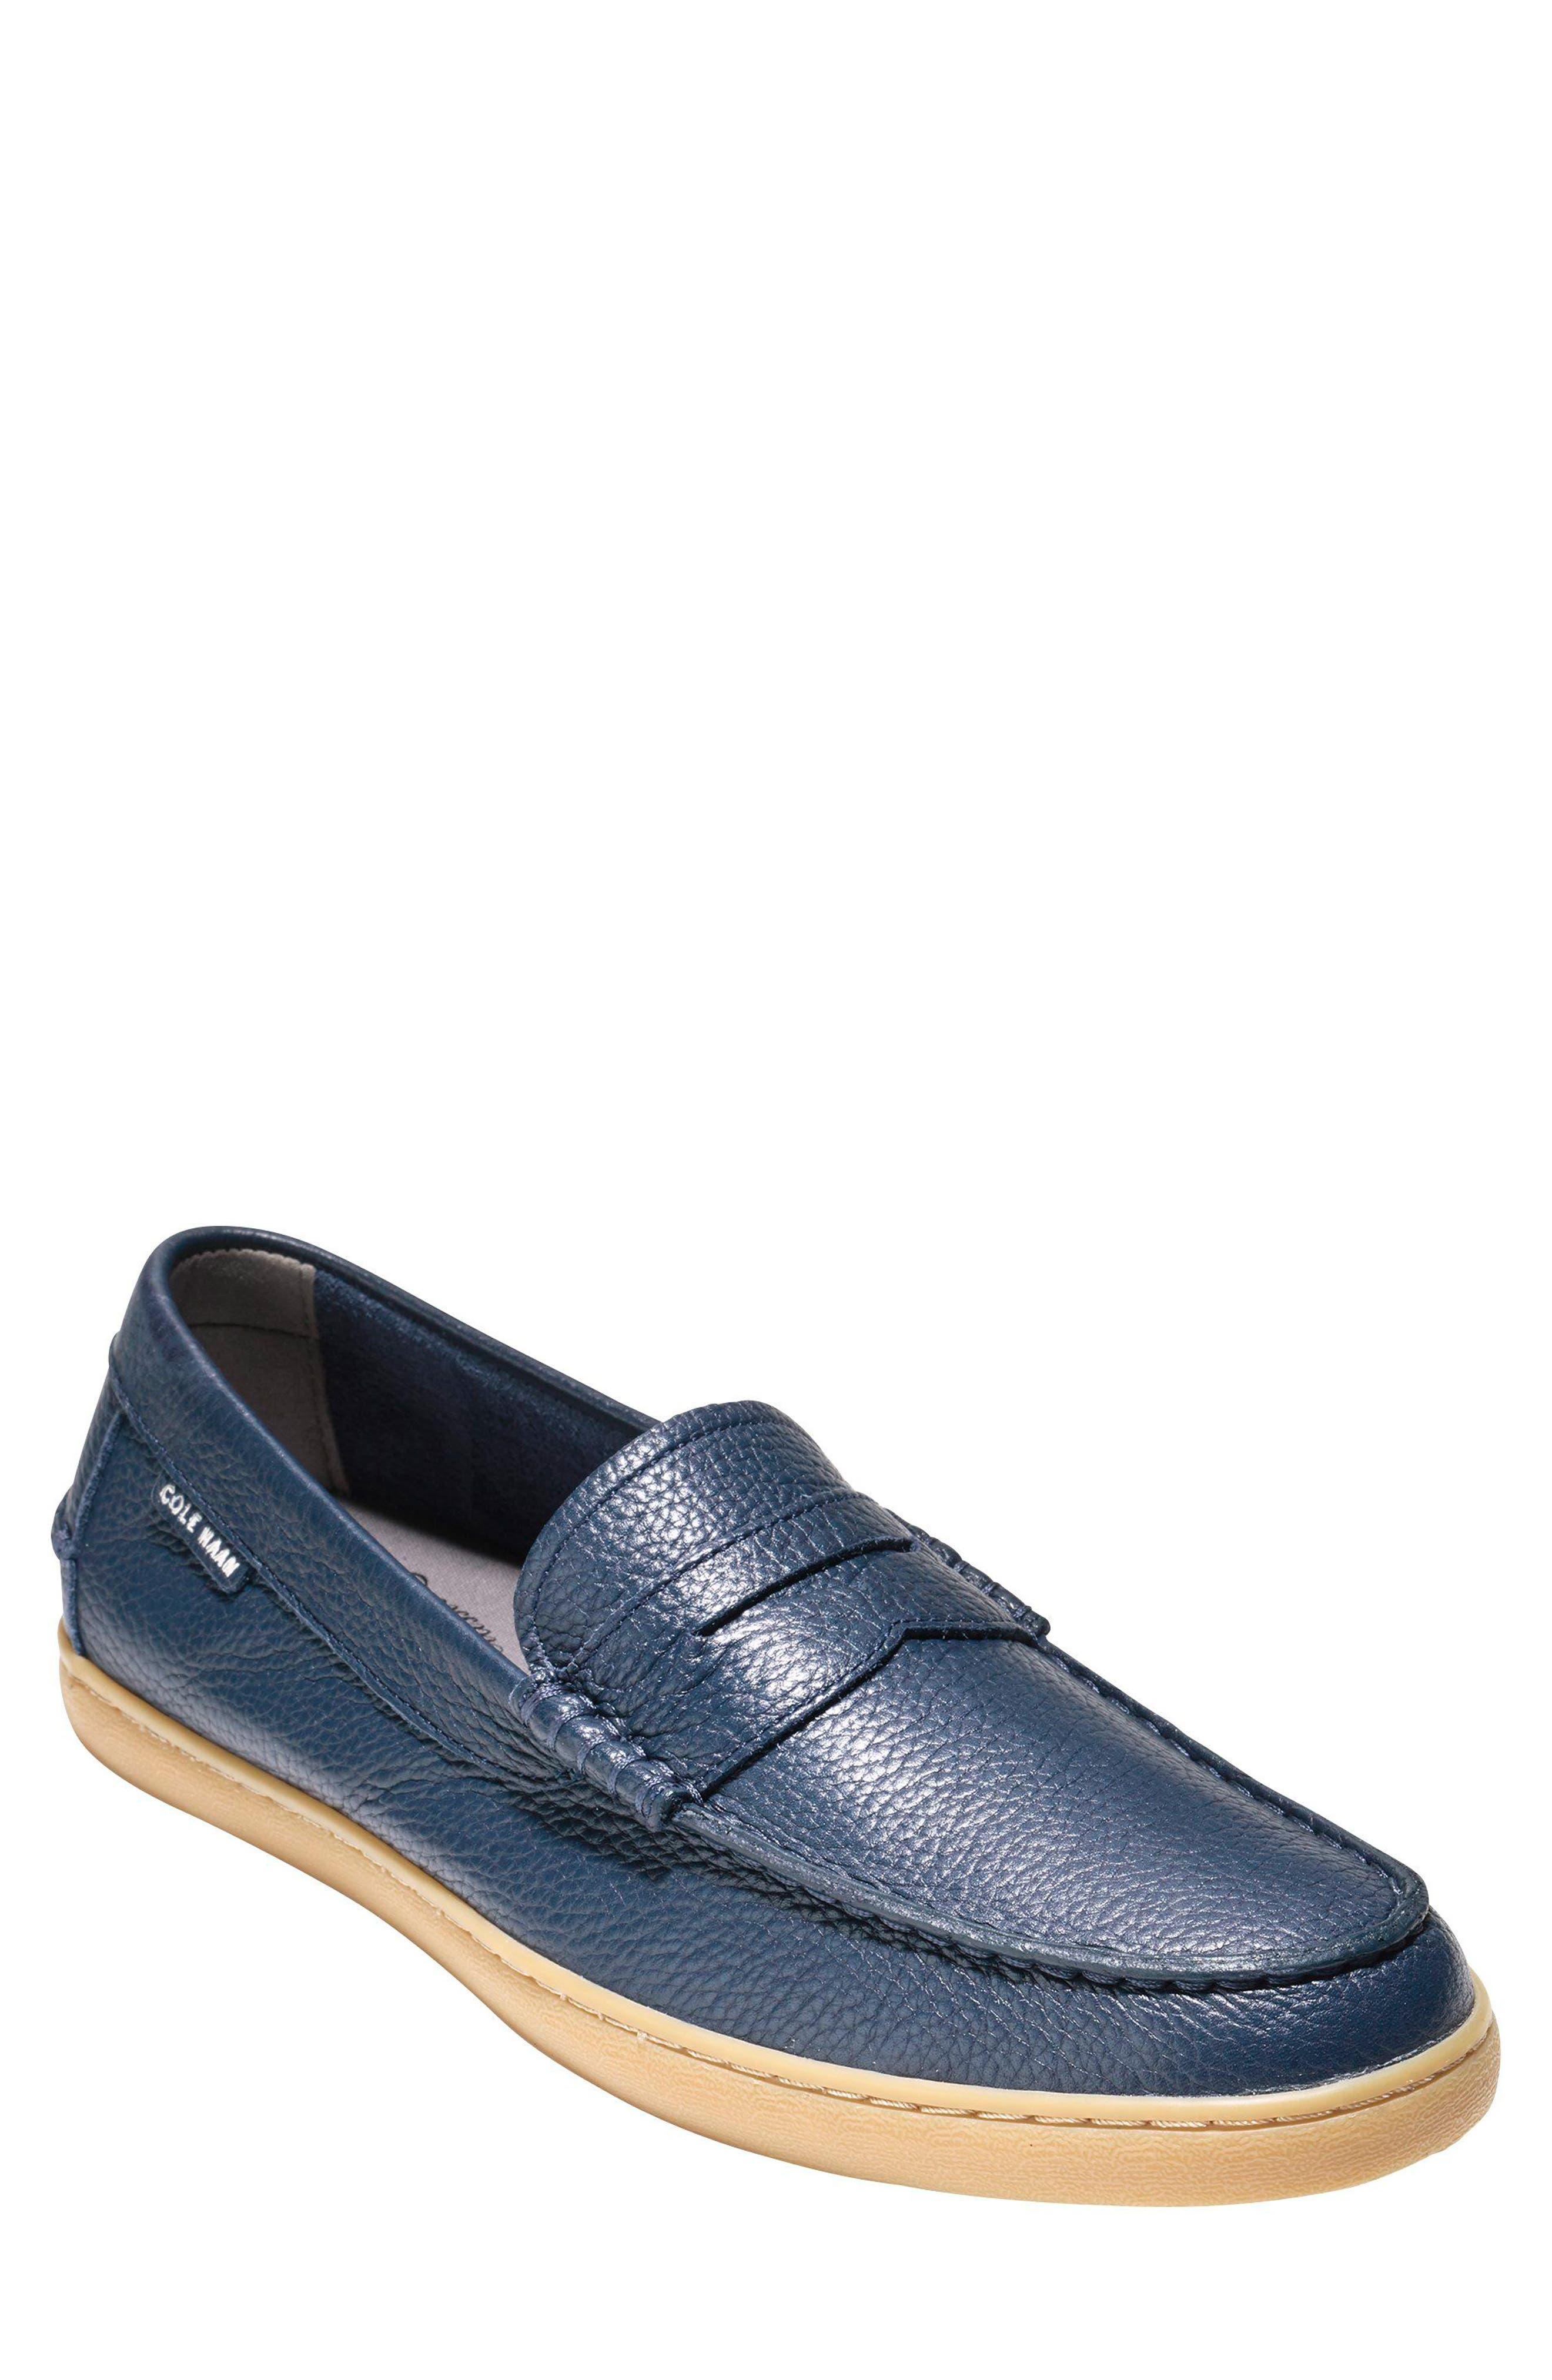 Main Image - Cole Haan 'Pinch Weekend' Penny Loafer (Men)